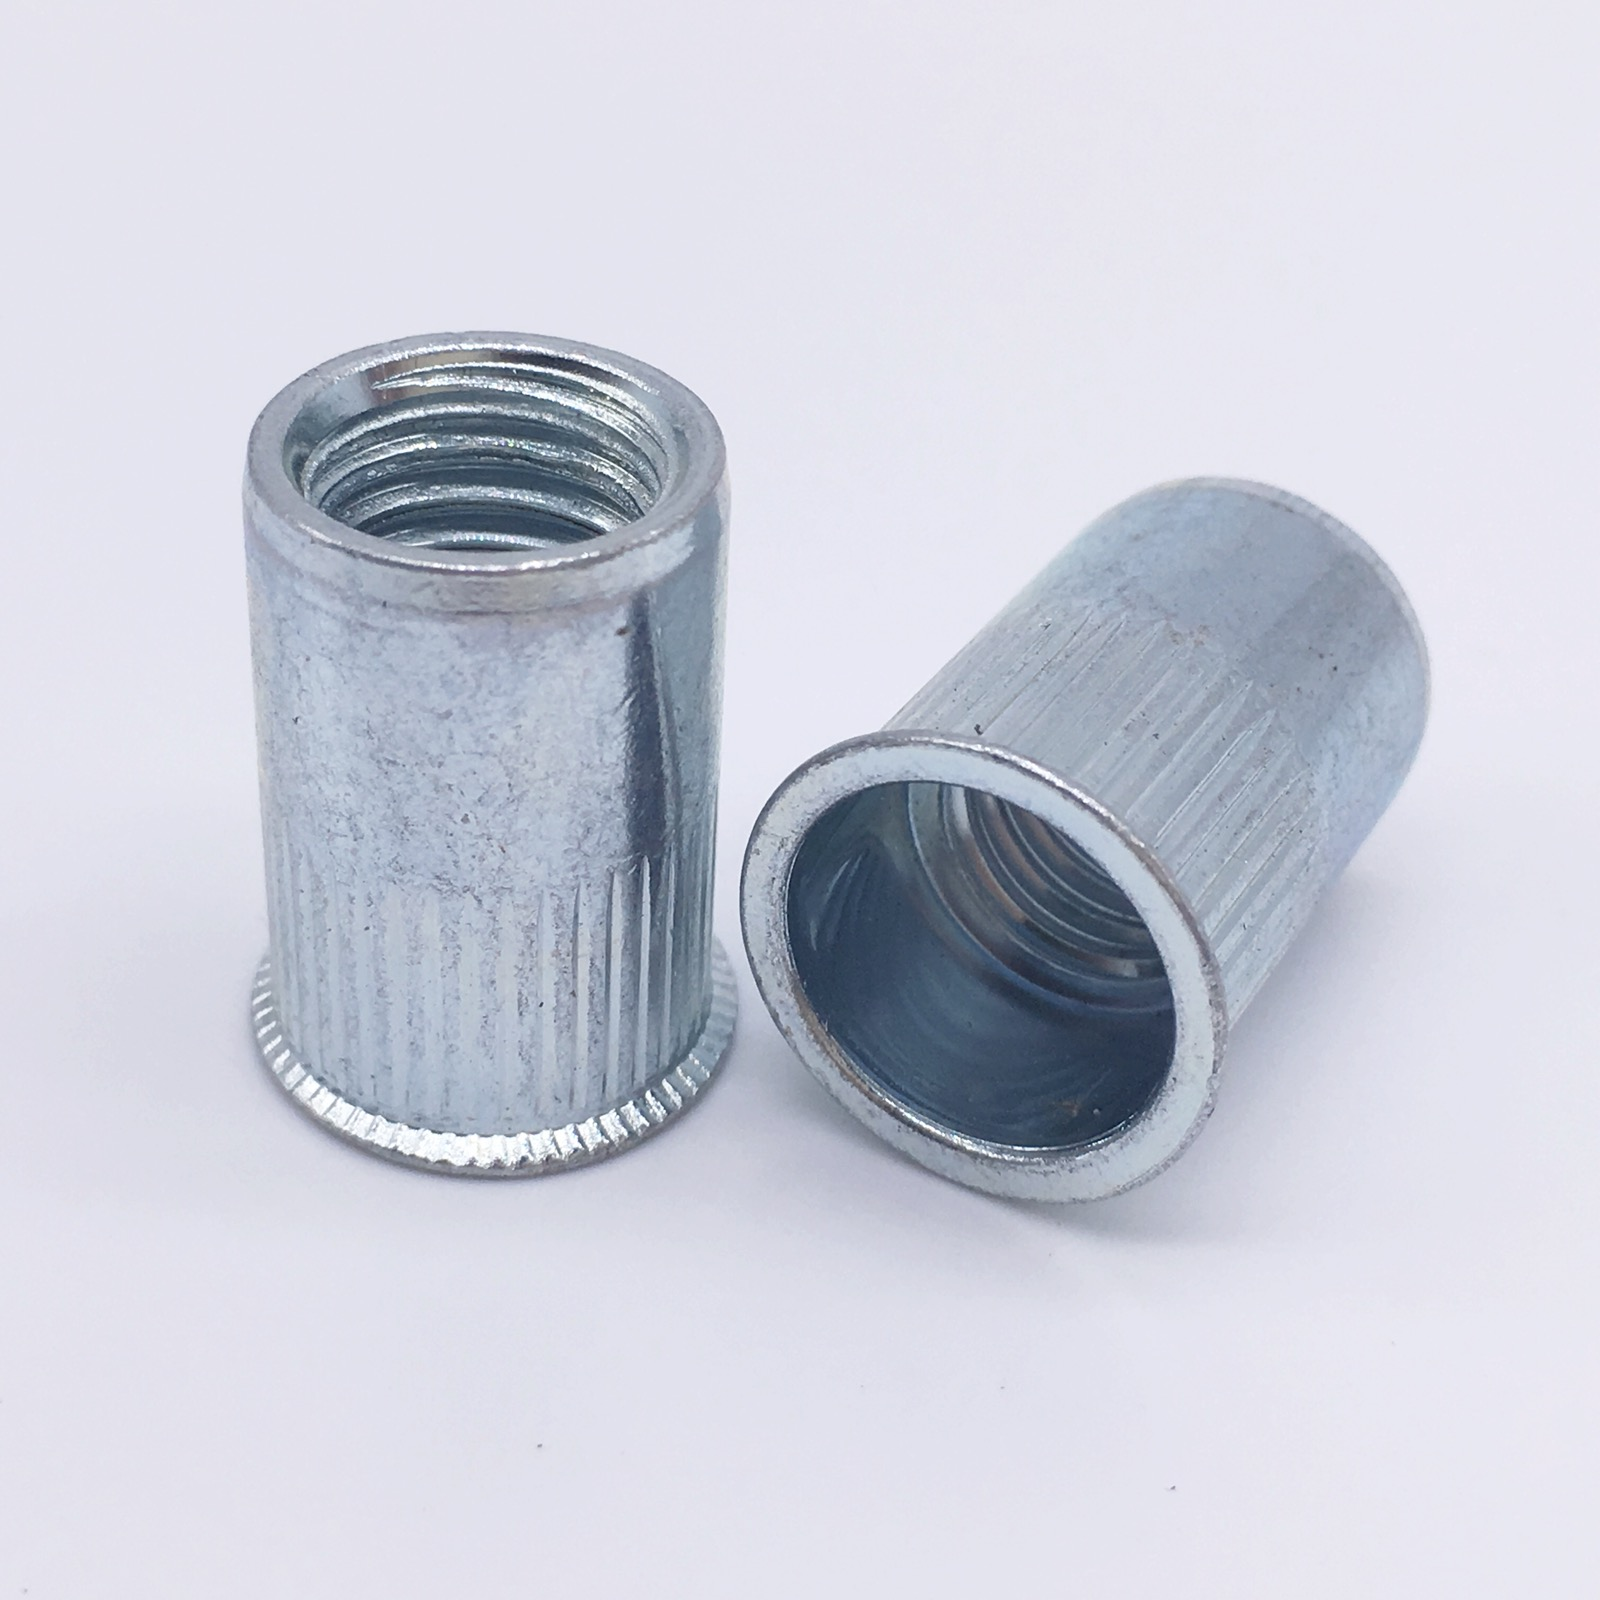 Rivet Nuts Threaded Inserts Blind Nuts Nutserts Rivnut M3 M4 M5 M6 M8 M10 M12 Small Head Countersunk Zinc Plated 165pcs m3 m4 m5 m6 m8 m10 m12 zinc plated knurled rivet nuts flat head threaded